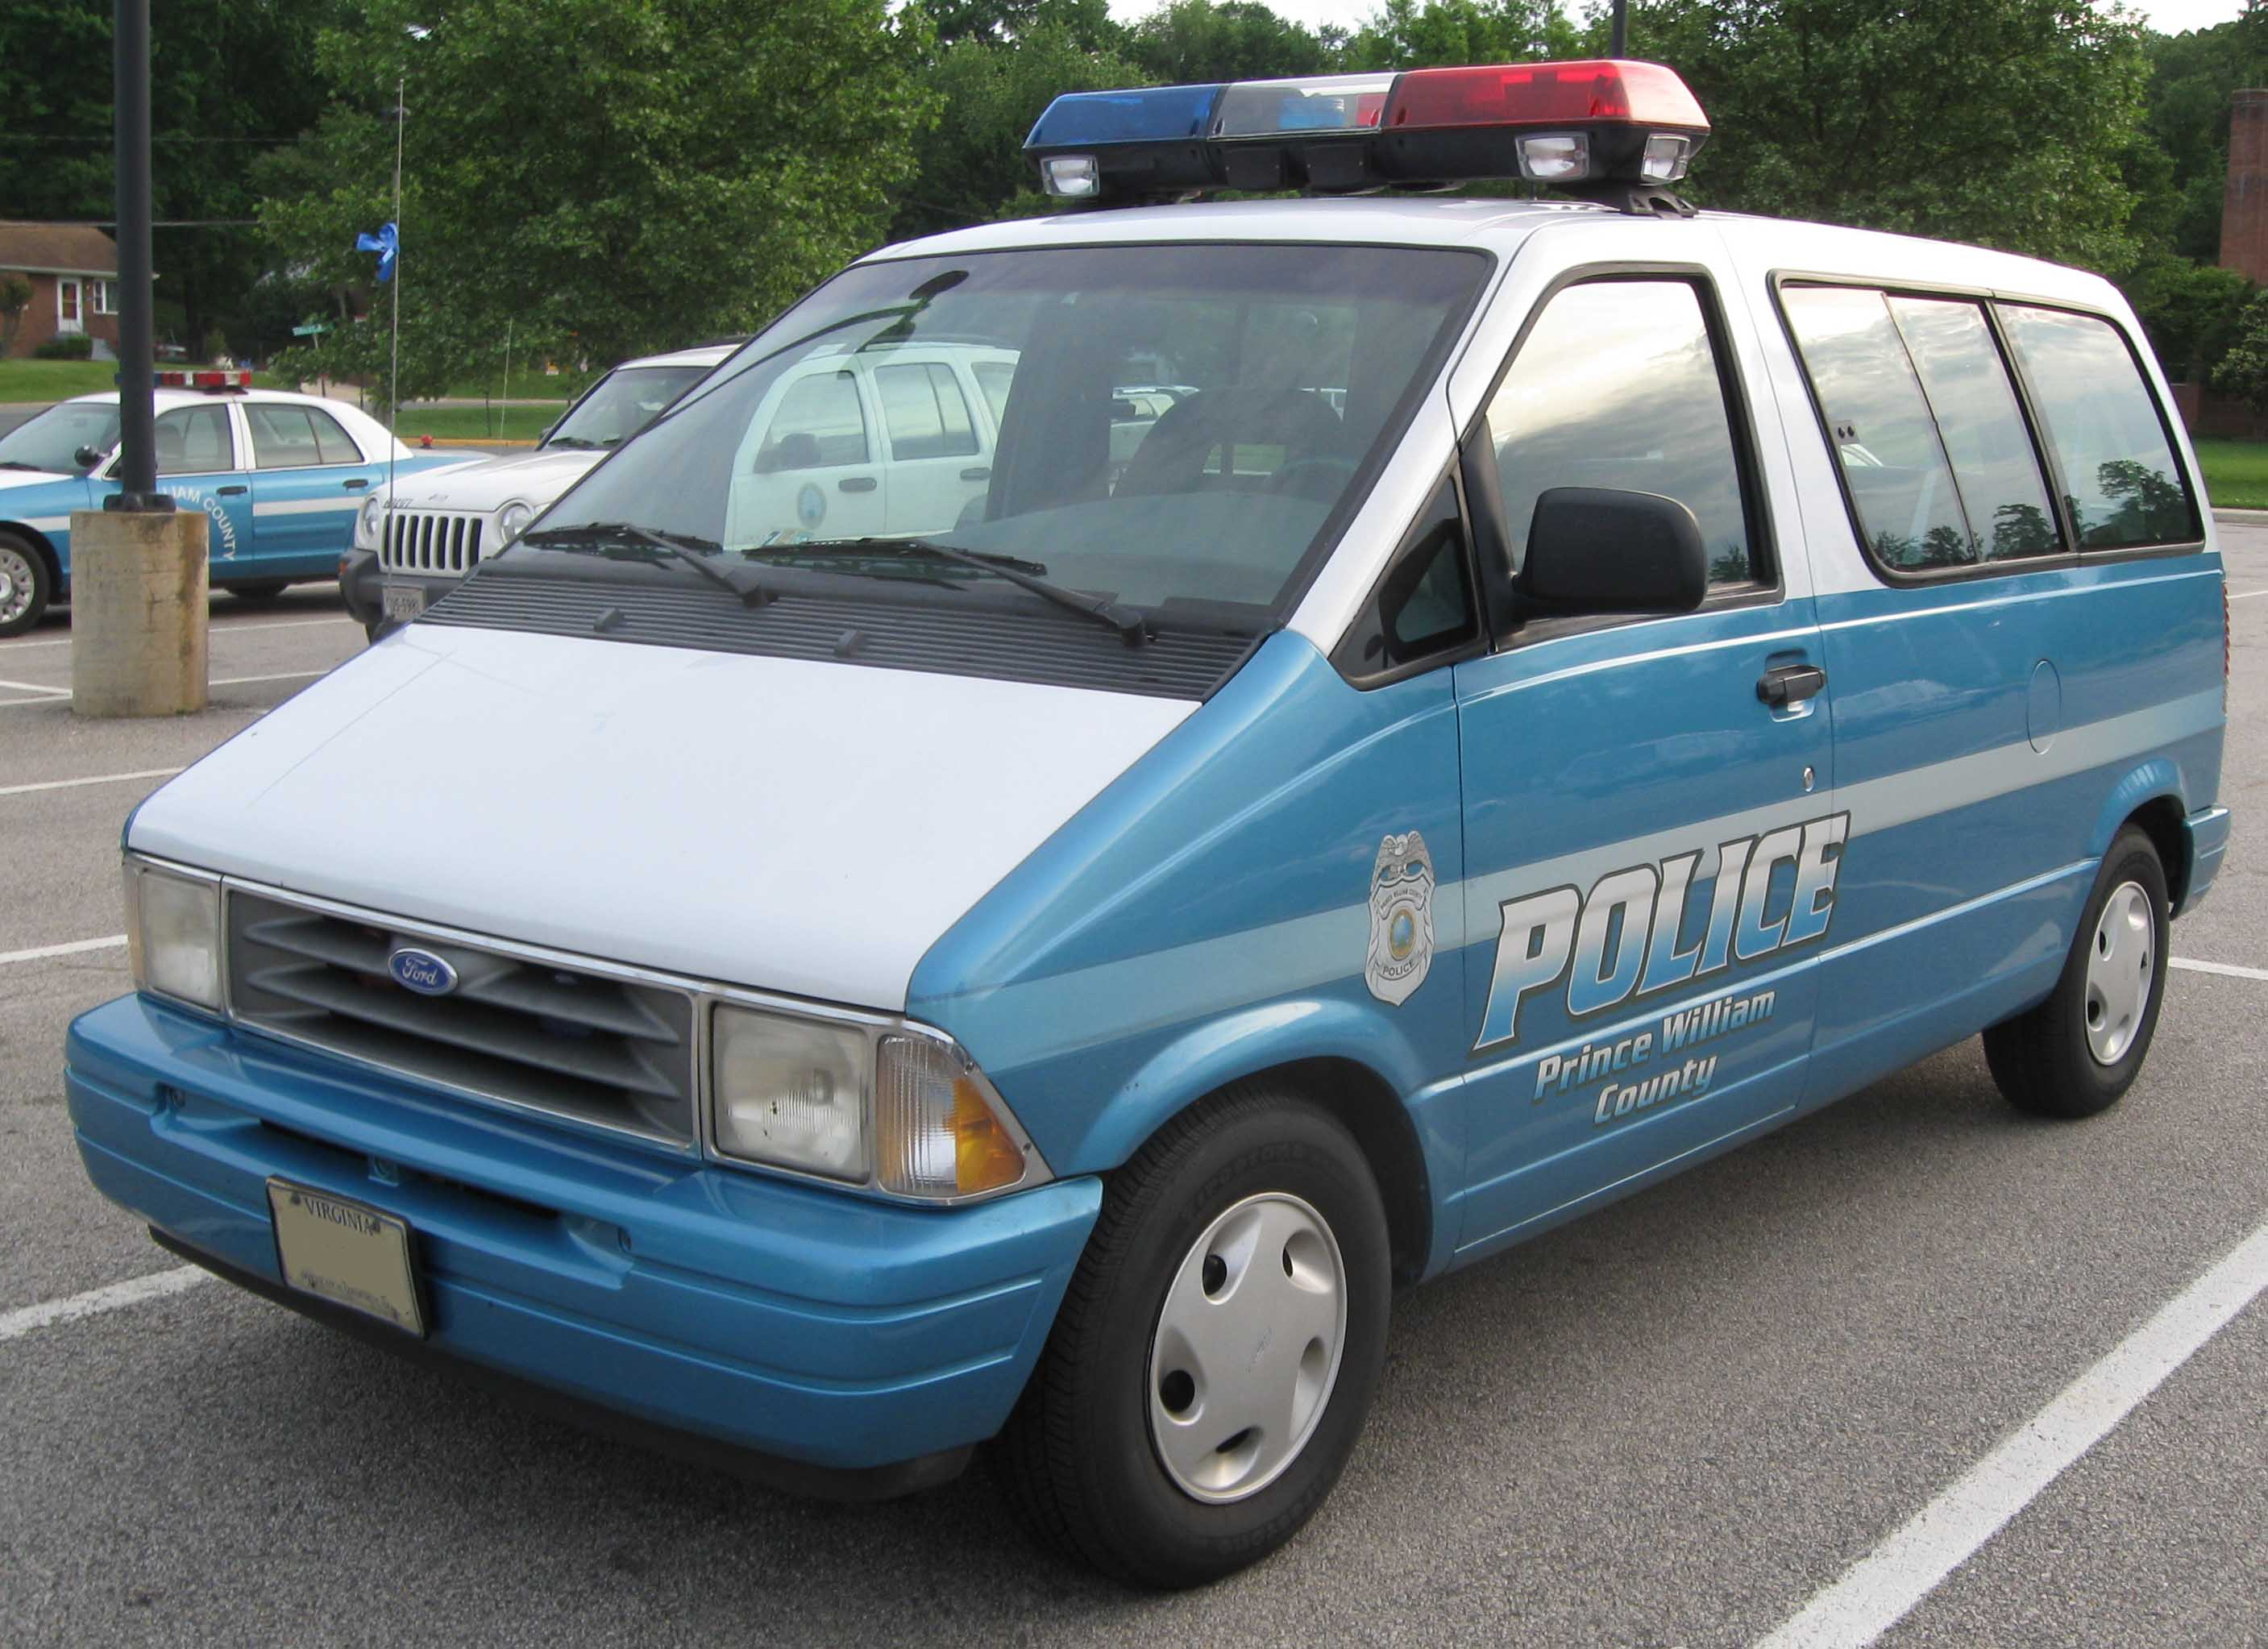 Chevy Astro Conversion Van For Sale File:Ford Aerostar police.jpg - Wikimedia Commons